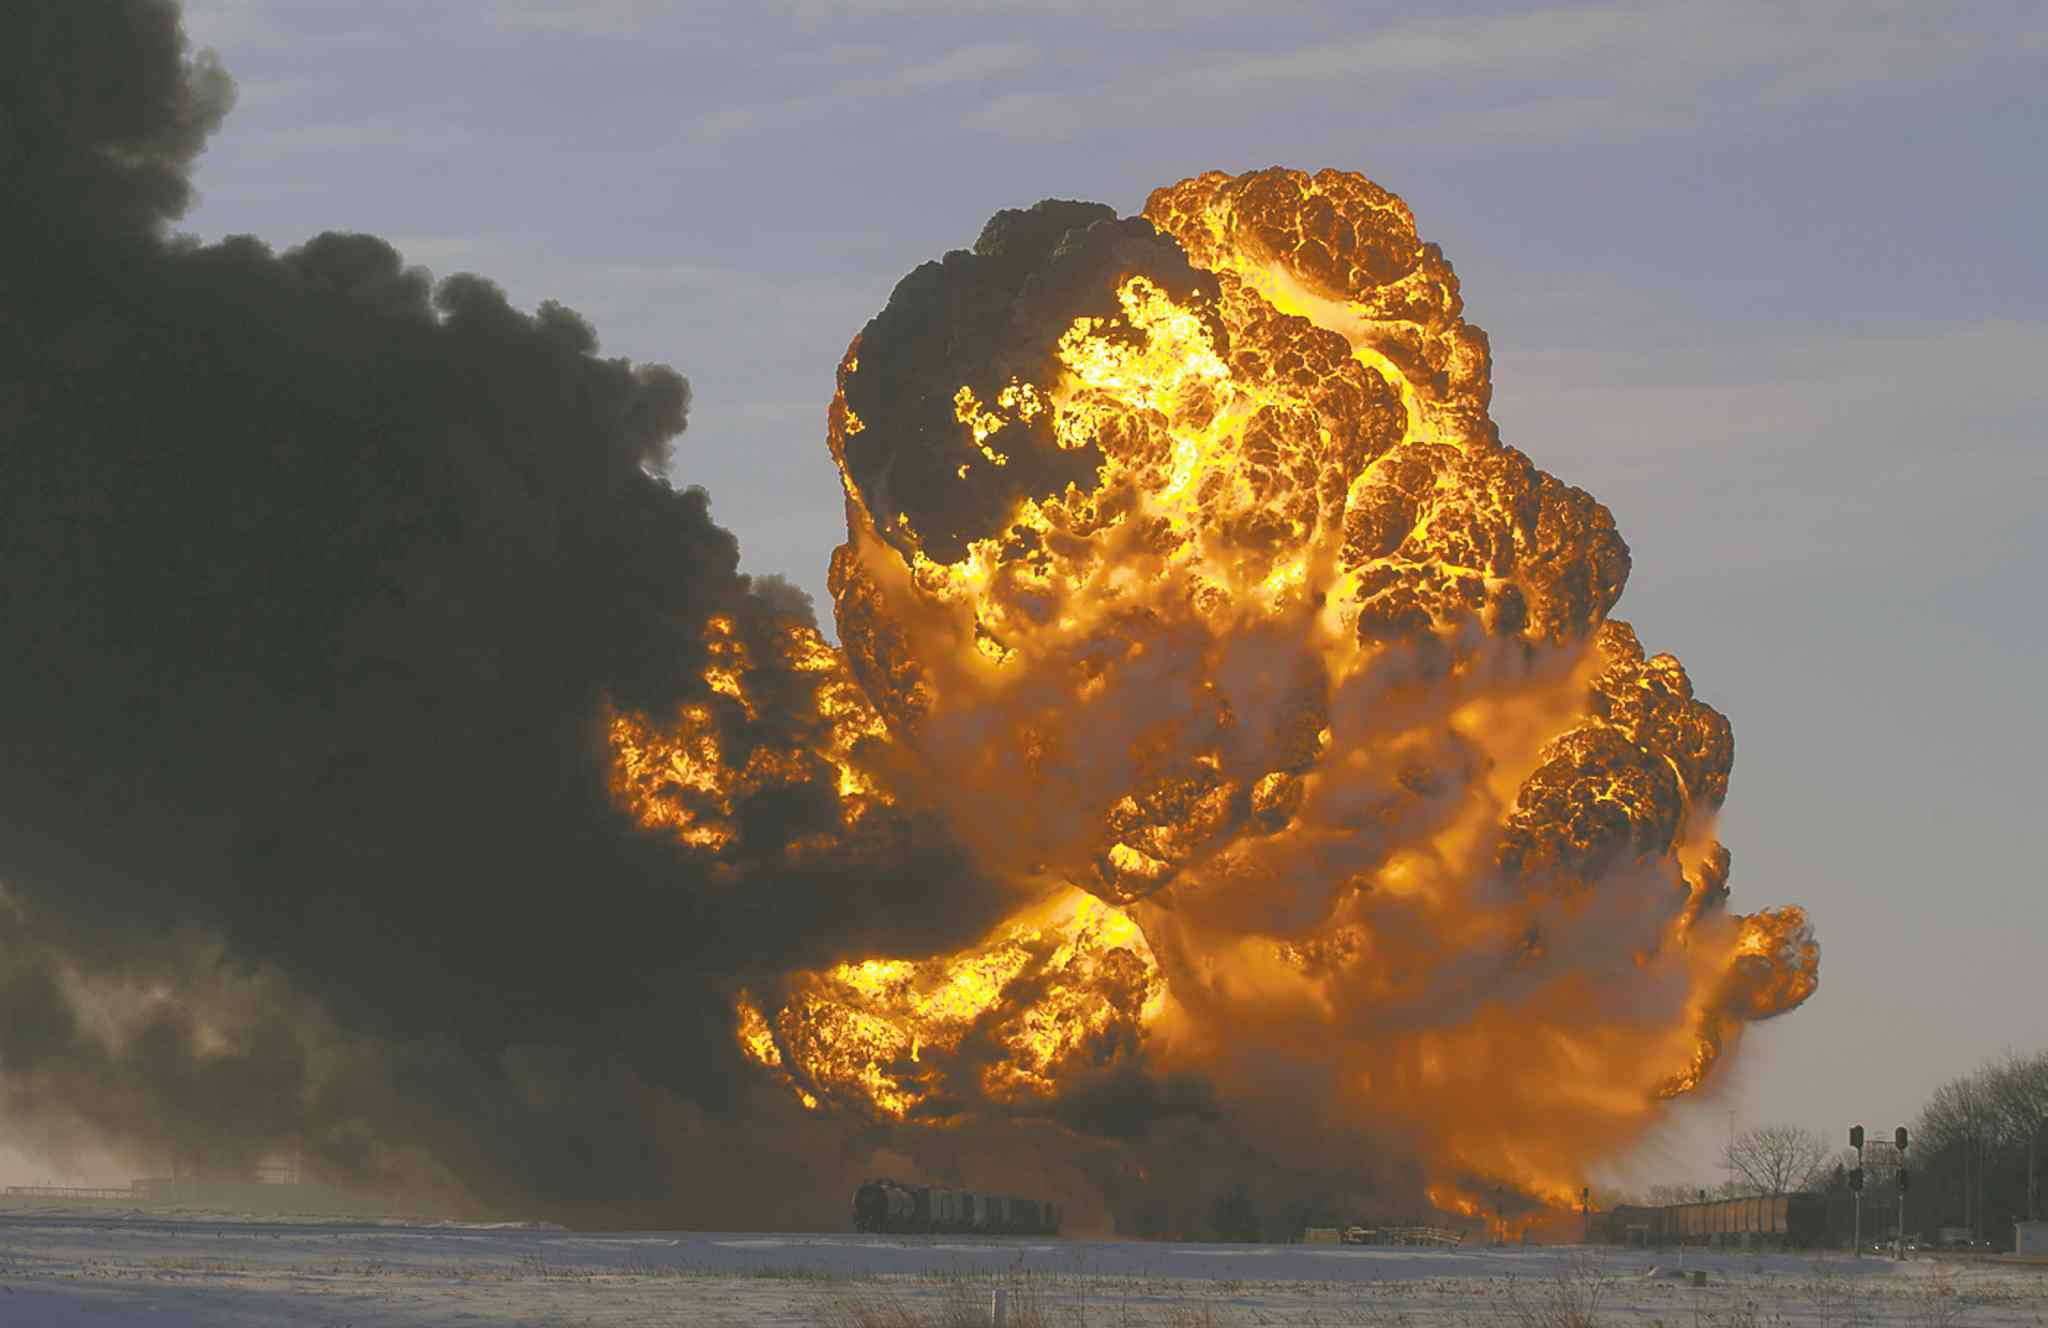 A fireball goes up at the site of an oil train derailment in Casselton, N.D. The 2,400 residents have been urged to evacuate.